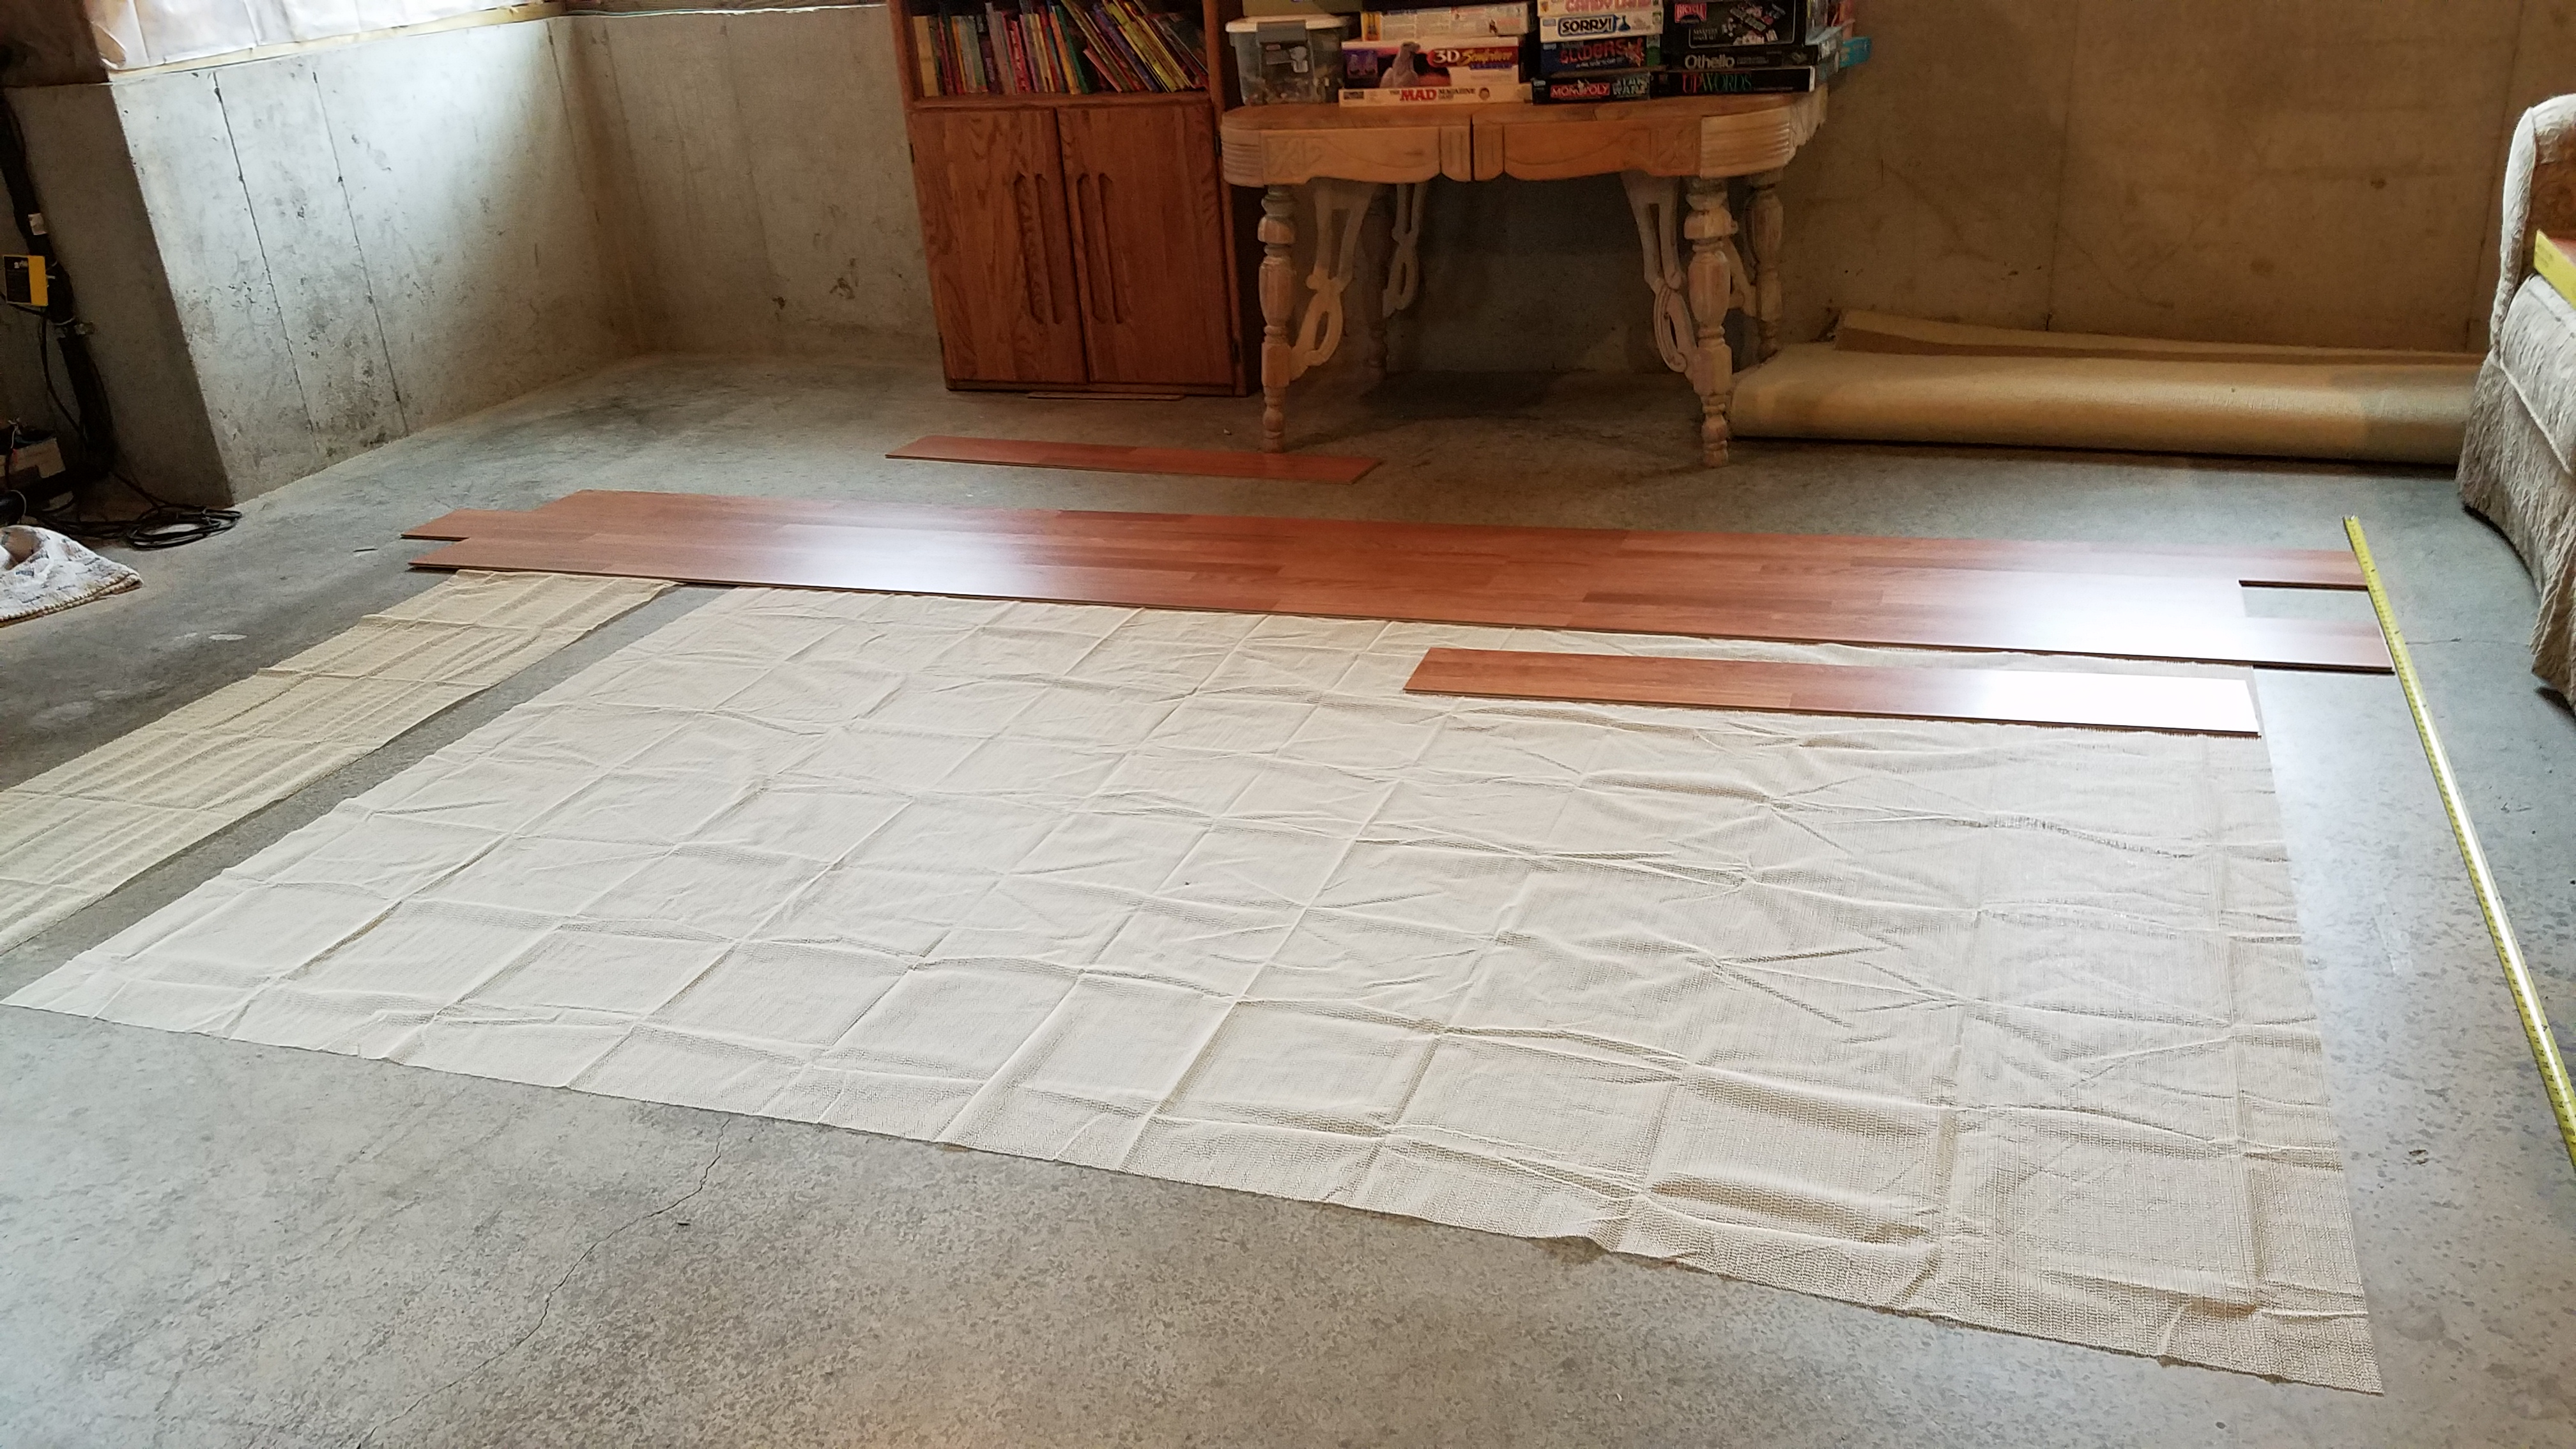 Start of Dance Floor Project - First Rows